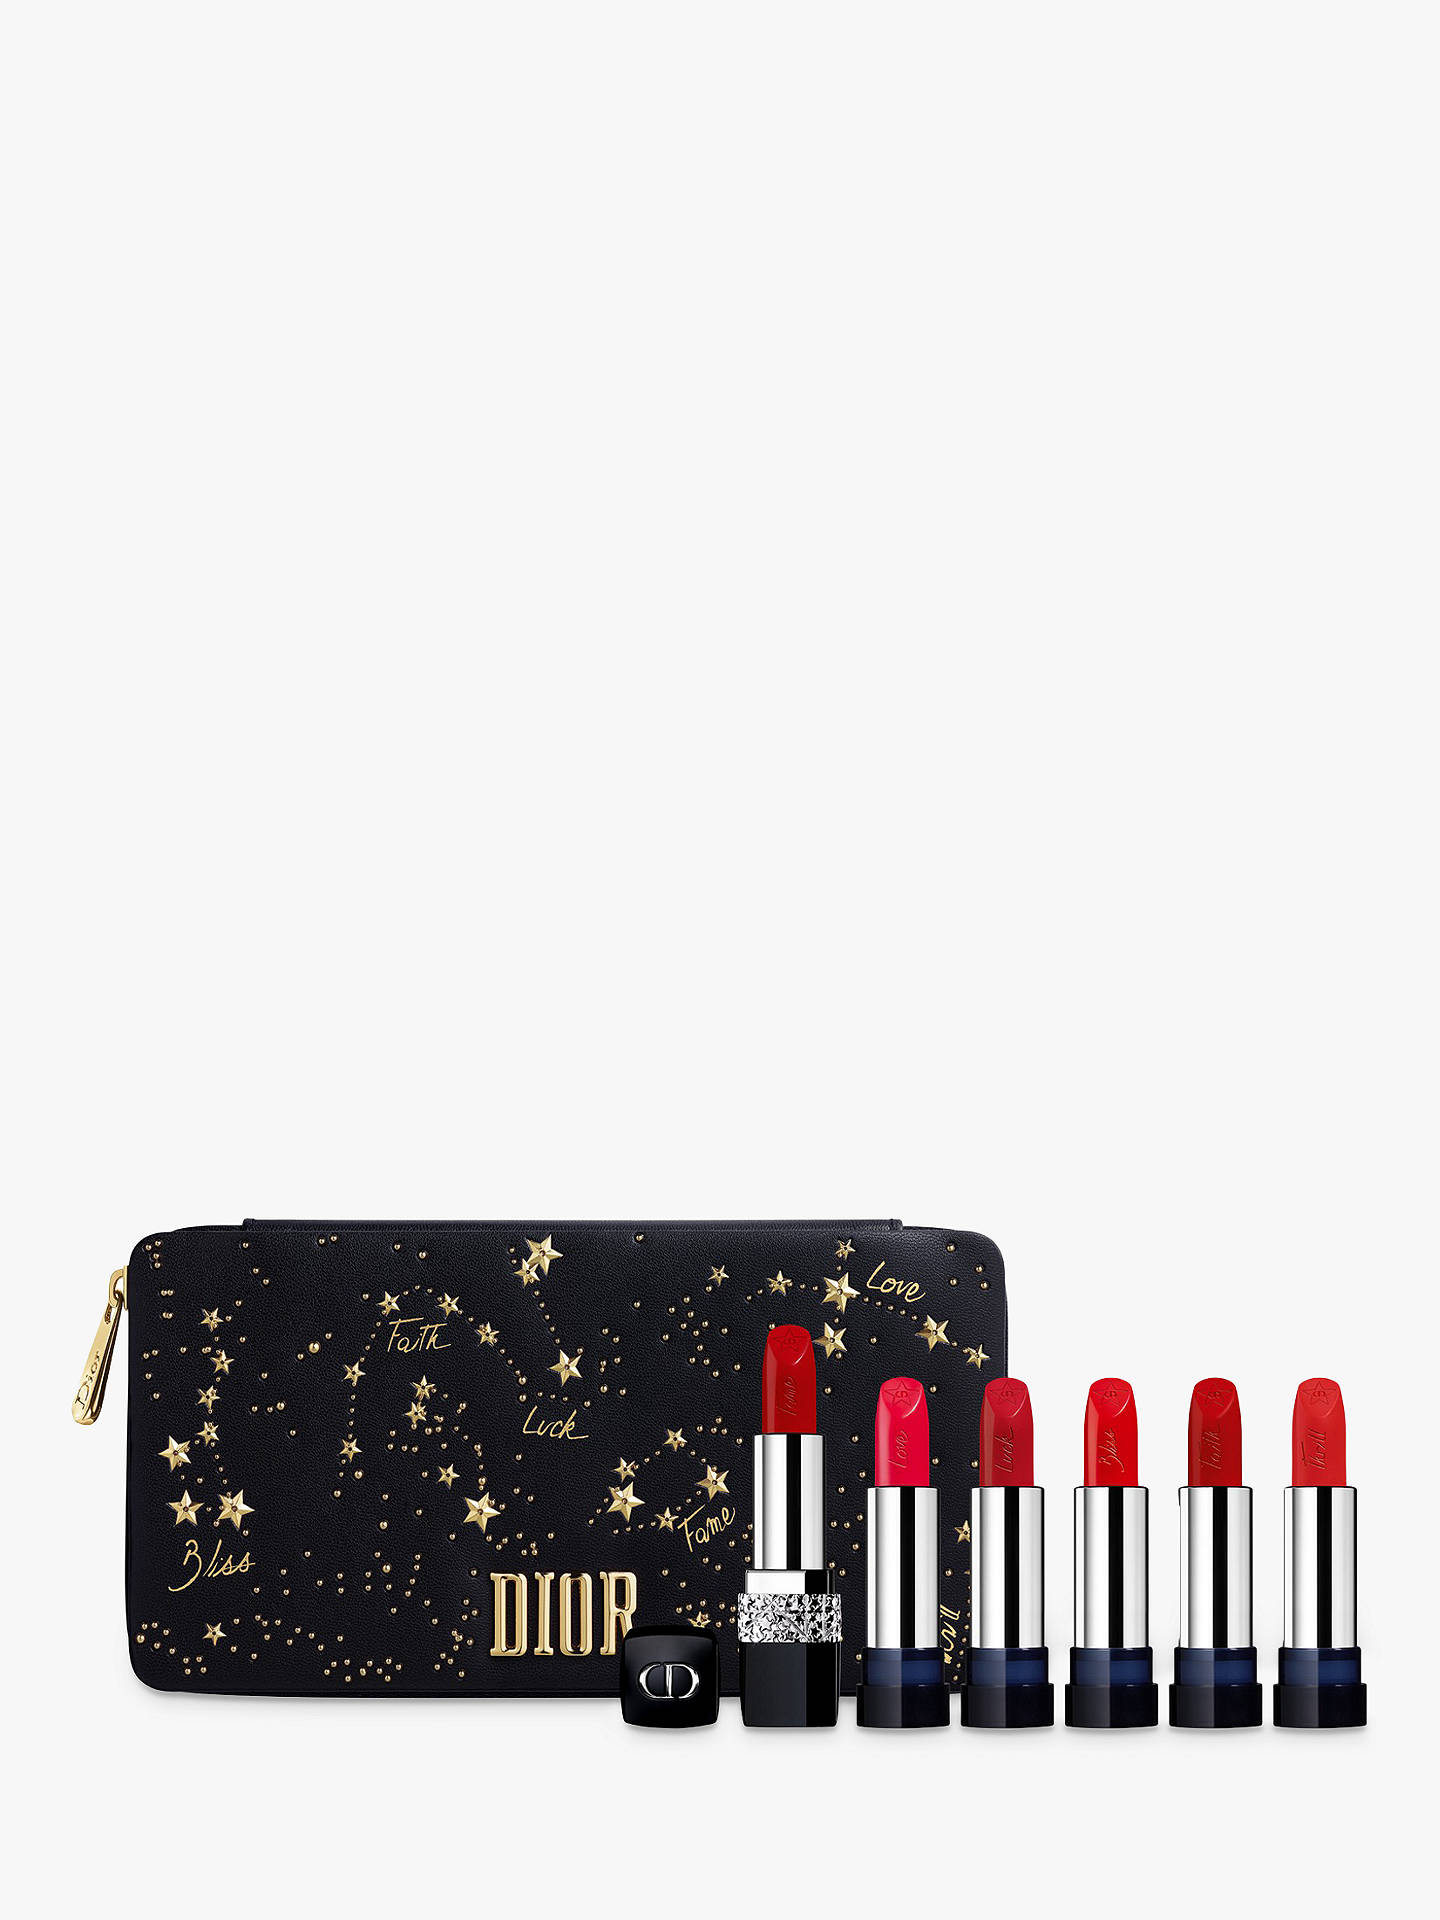 Hair stylish bands for women, The digital tam vivienne clutch